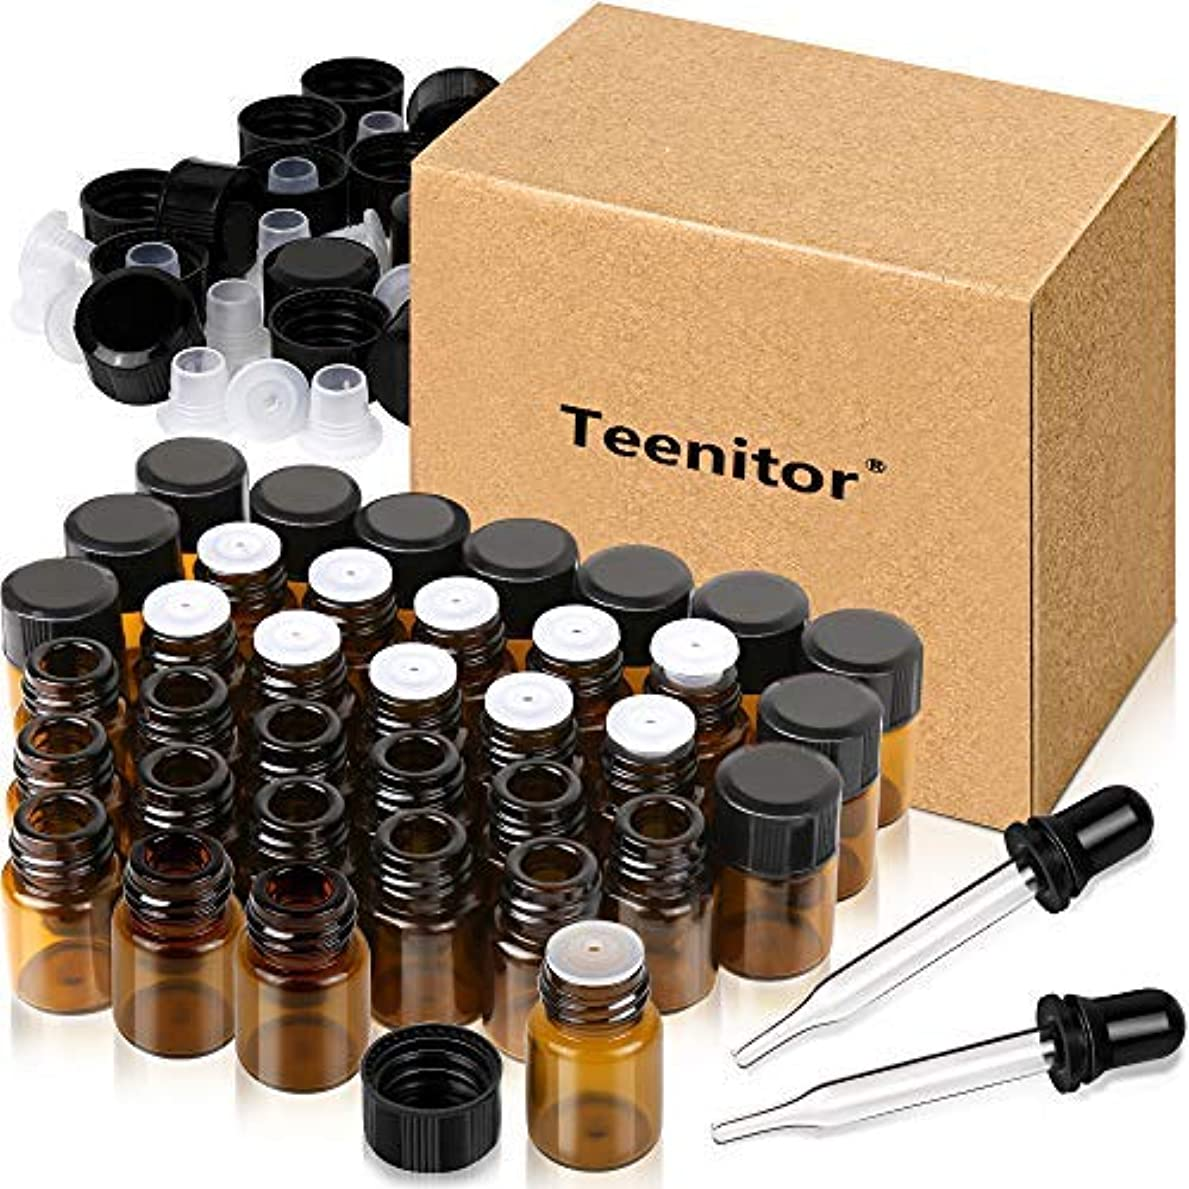 Oil Bottles for Essential Oils, Teenitor 36 Pcs 2 ml (5/8 Dram) Amber Glass Vials Bottles, with Orifice Reducers...